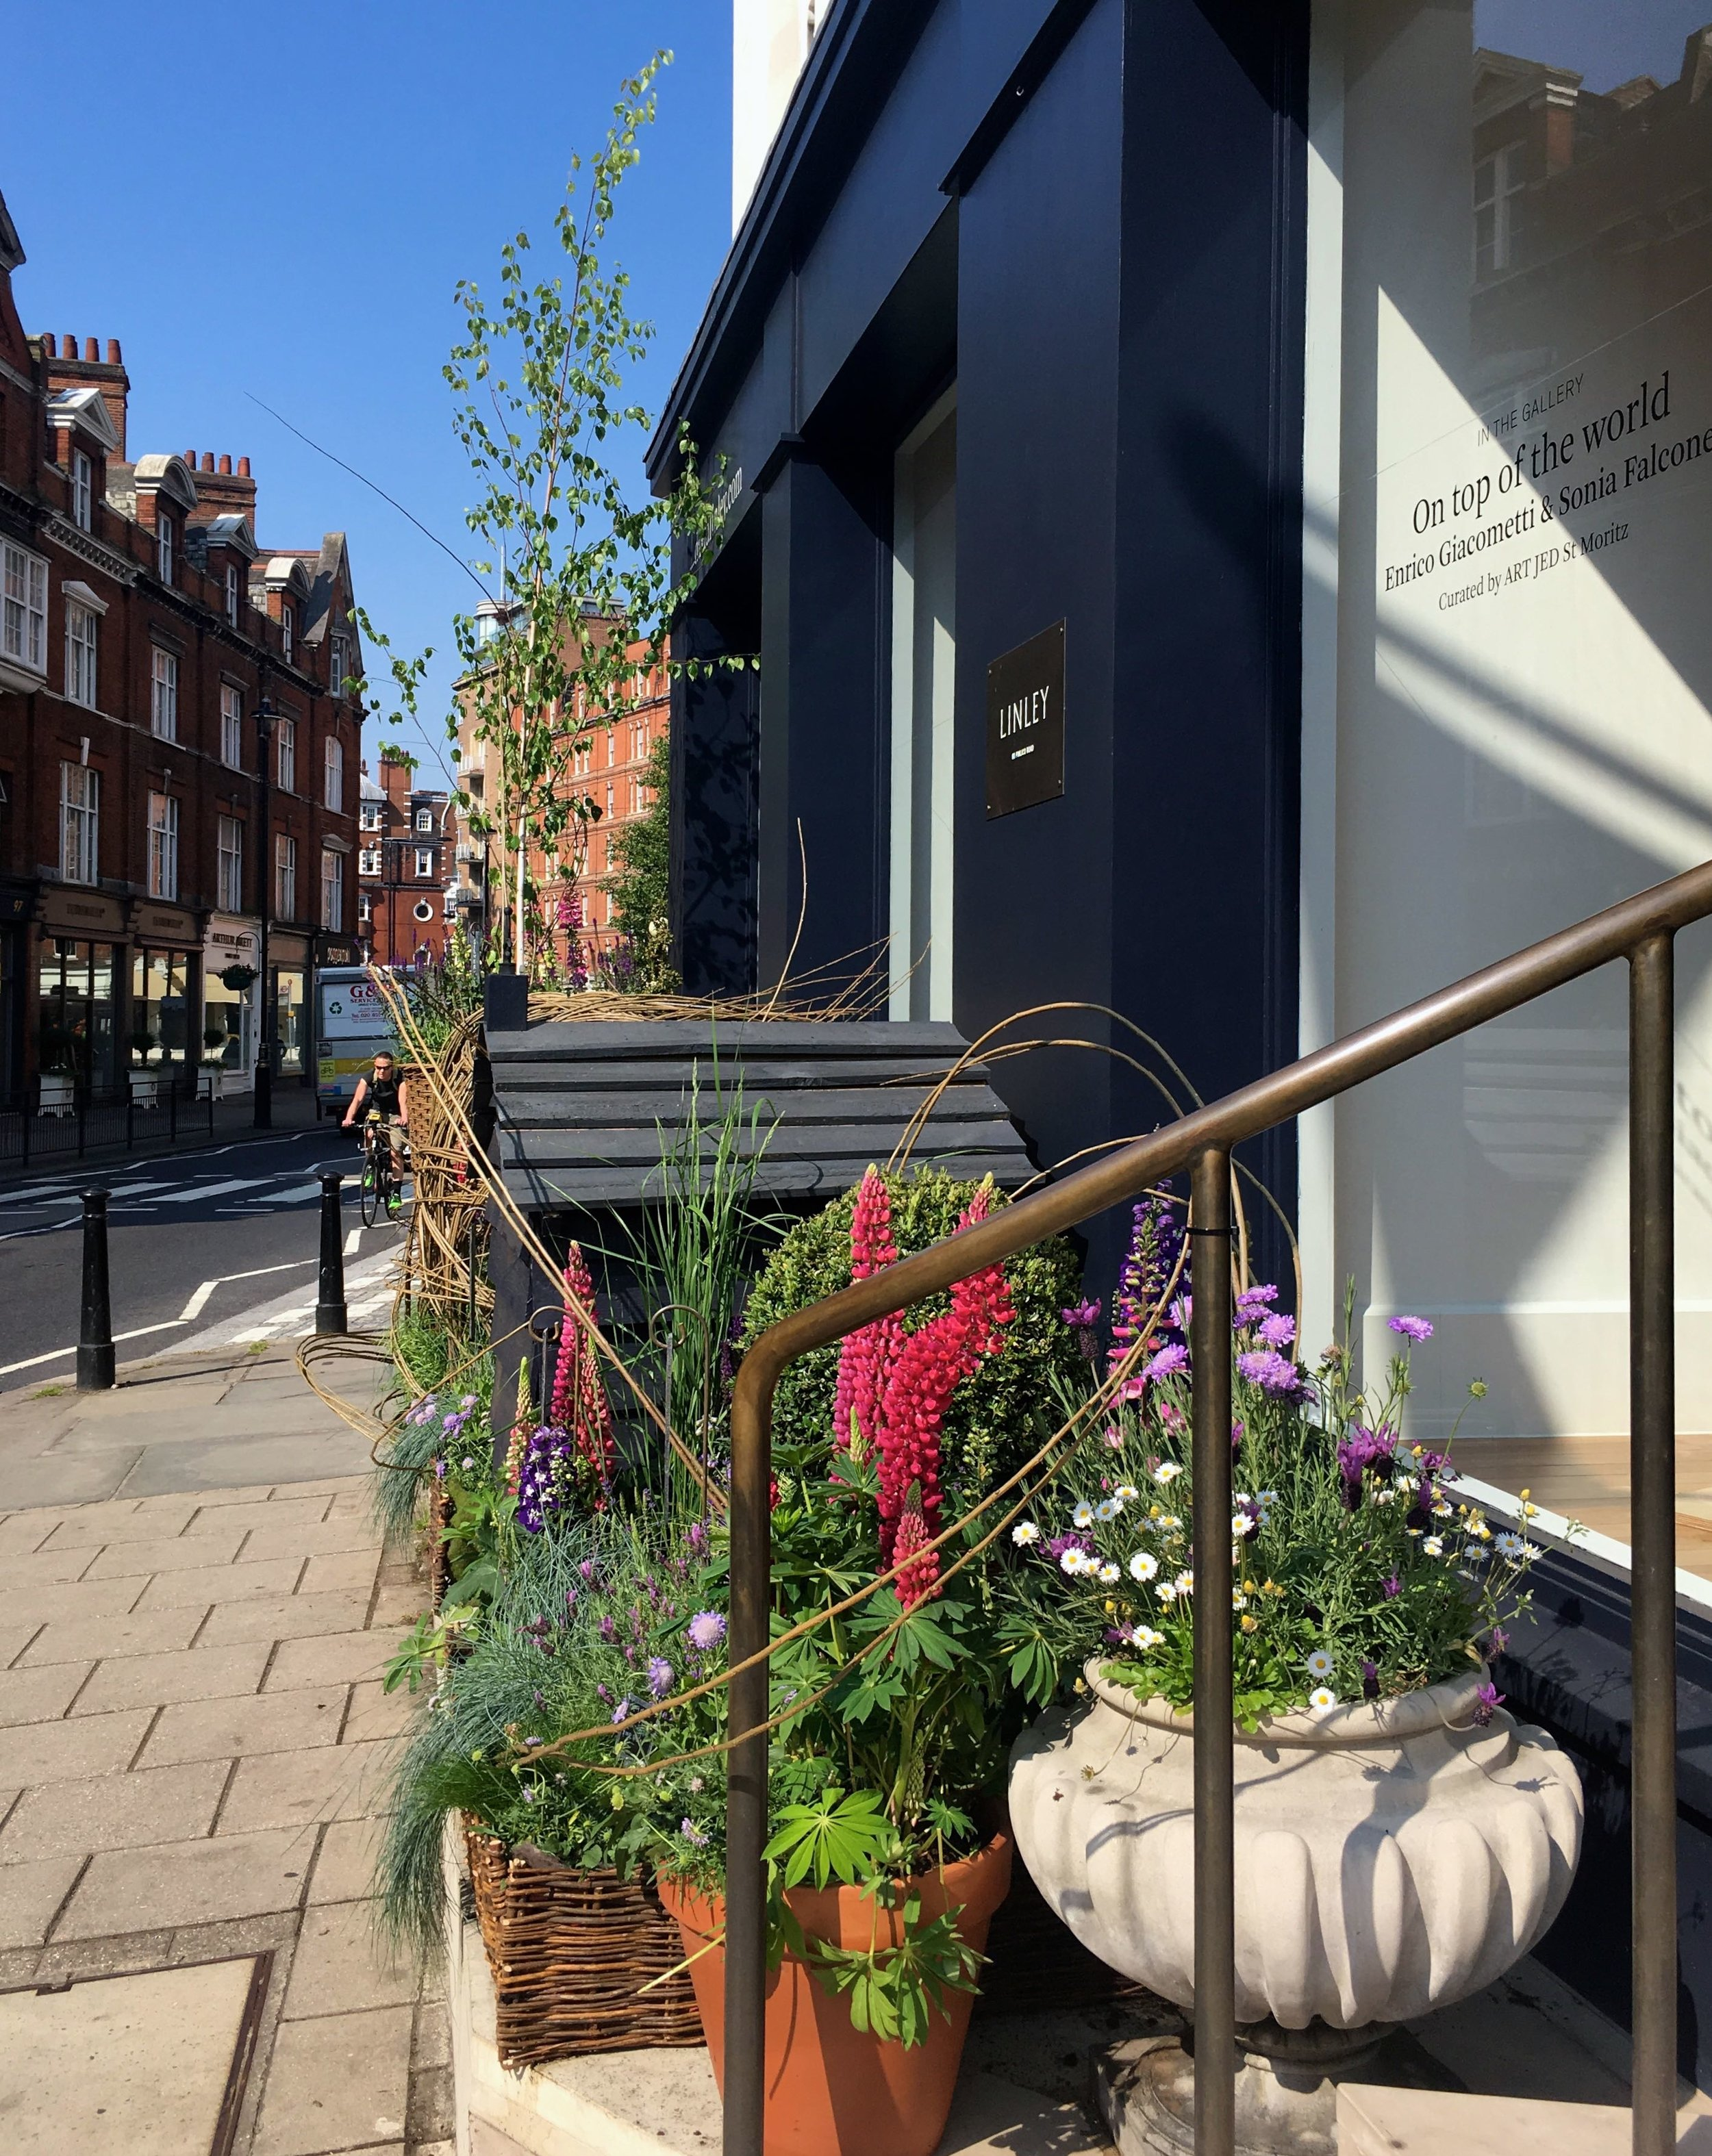 Blue skies and a garden for bees outside the shop